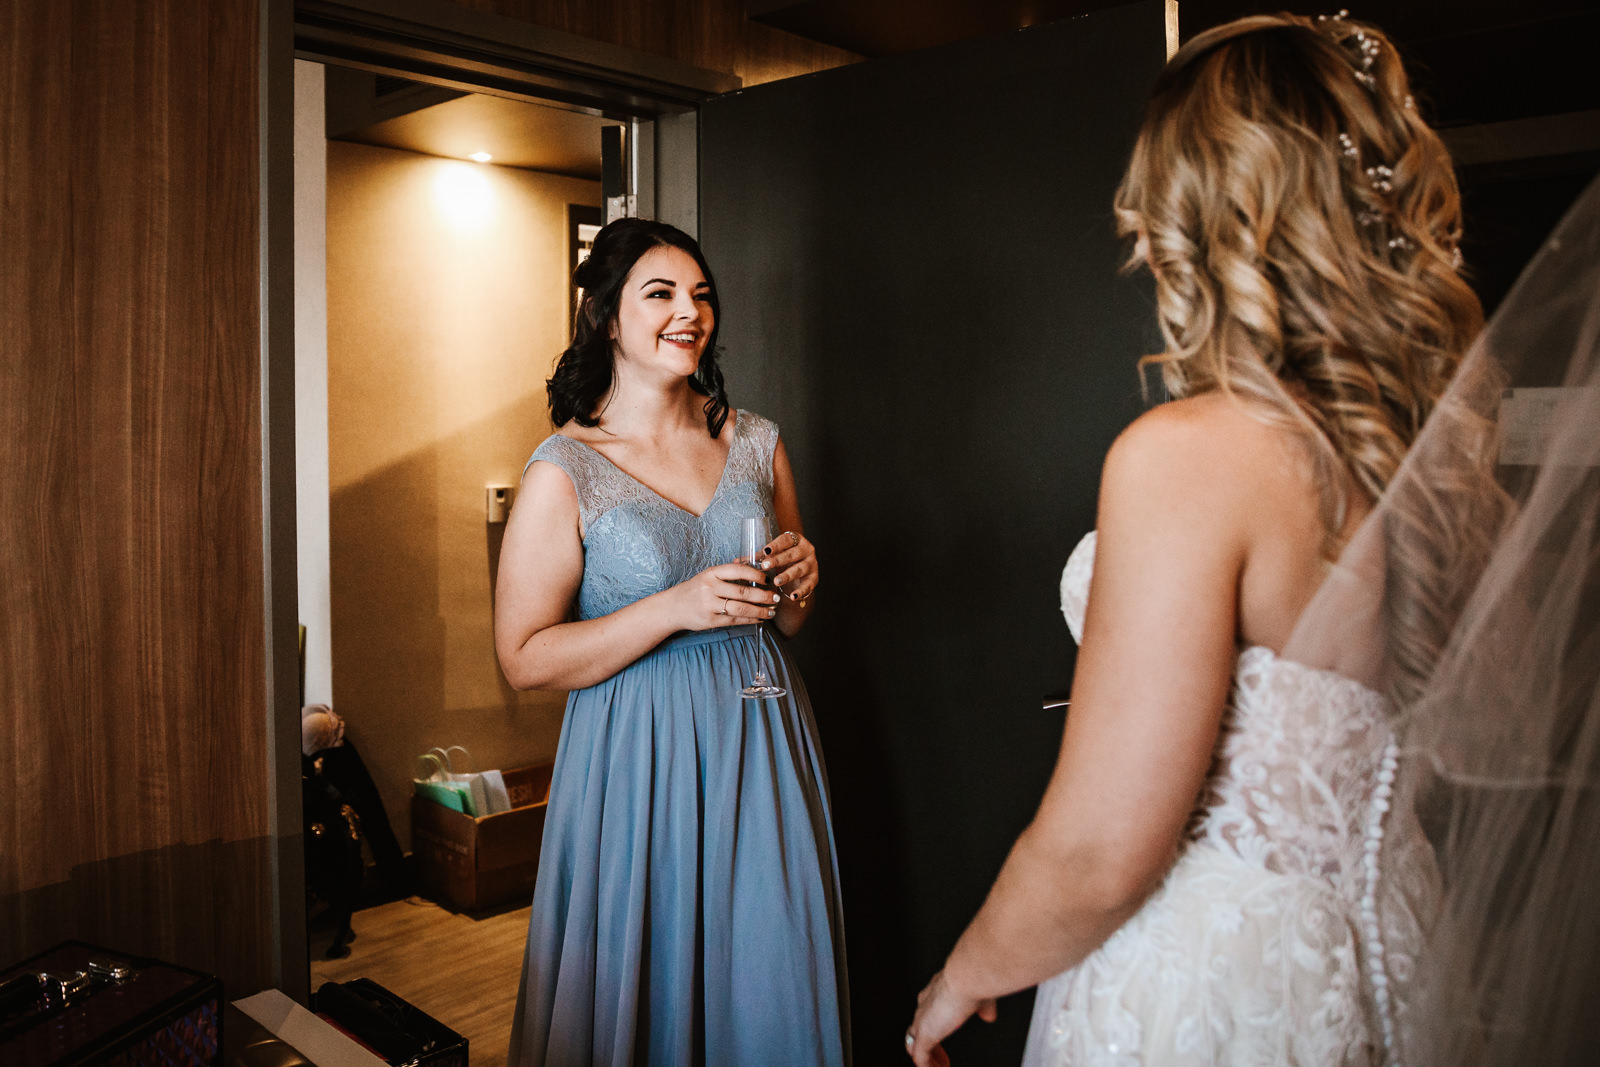 Bridesmaid smiling with the bride